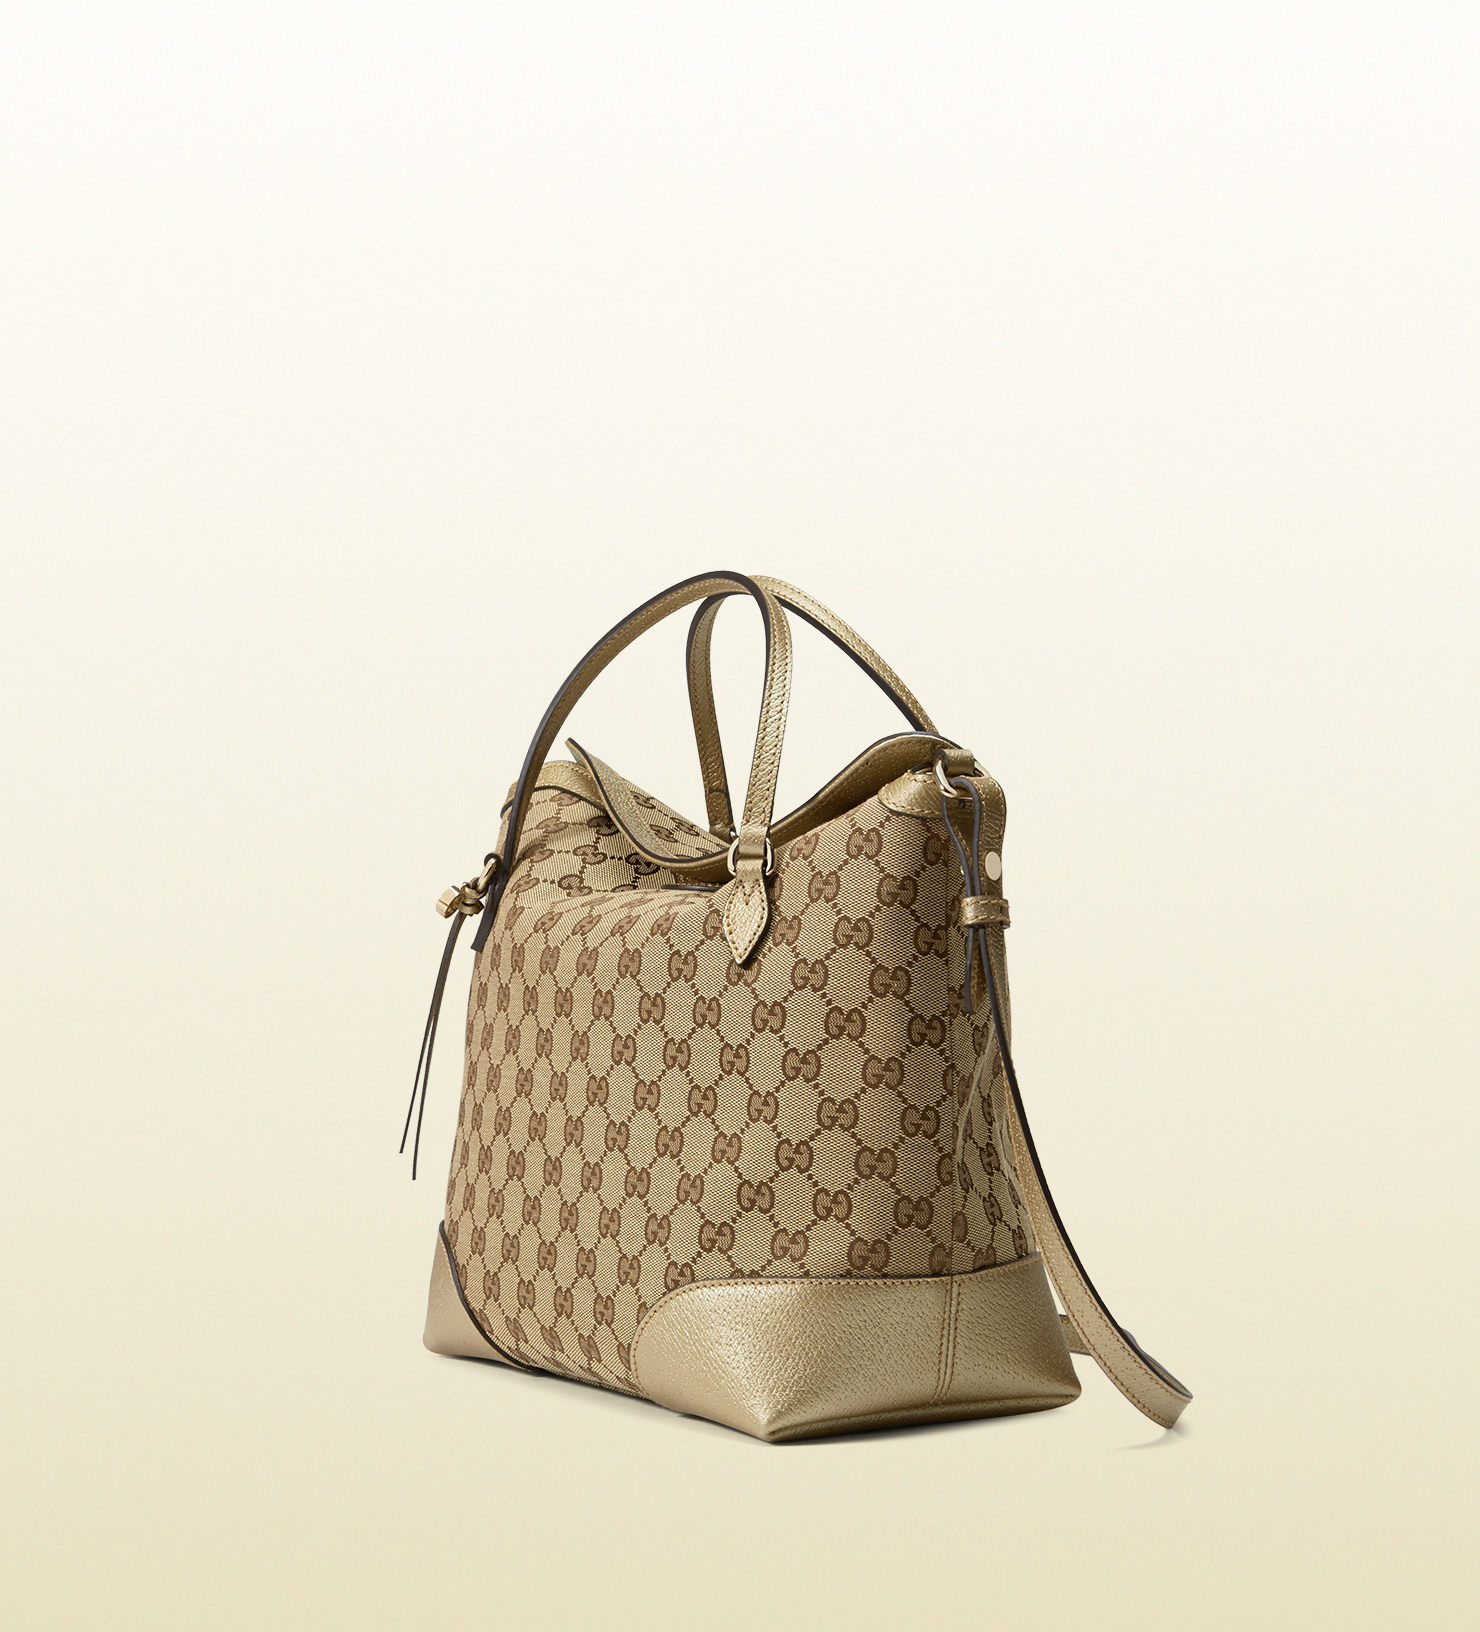 9f8ee3109e9 Lyst - Gucci Bree Original Gg Canvas Top Handle Bag in Natural